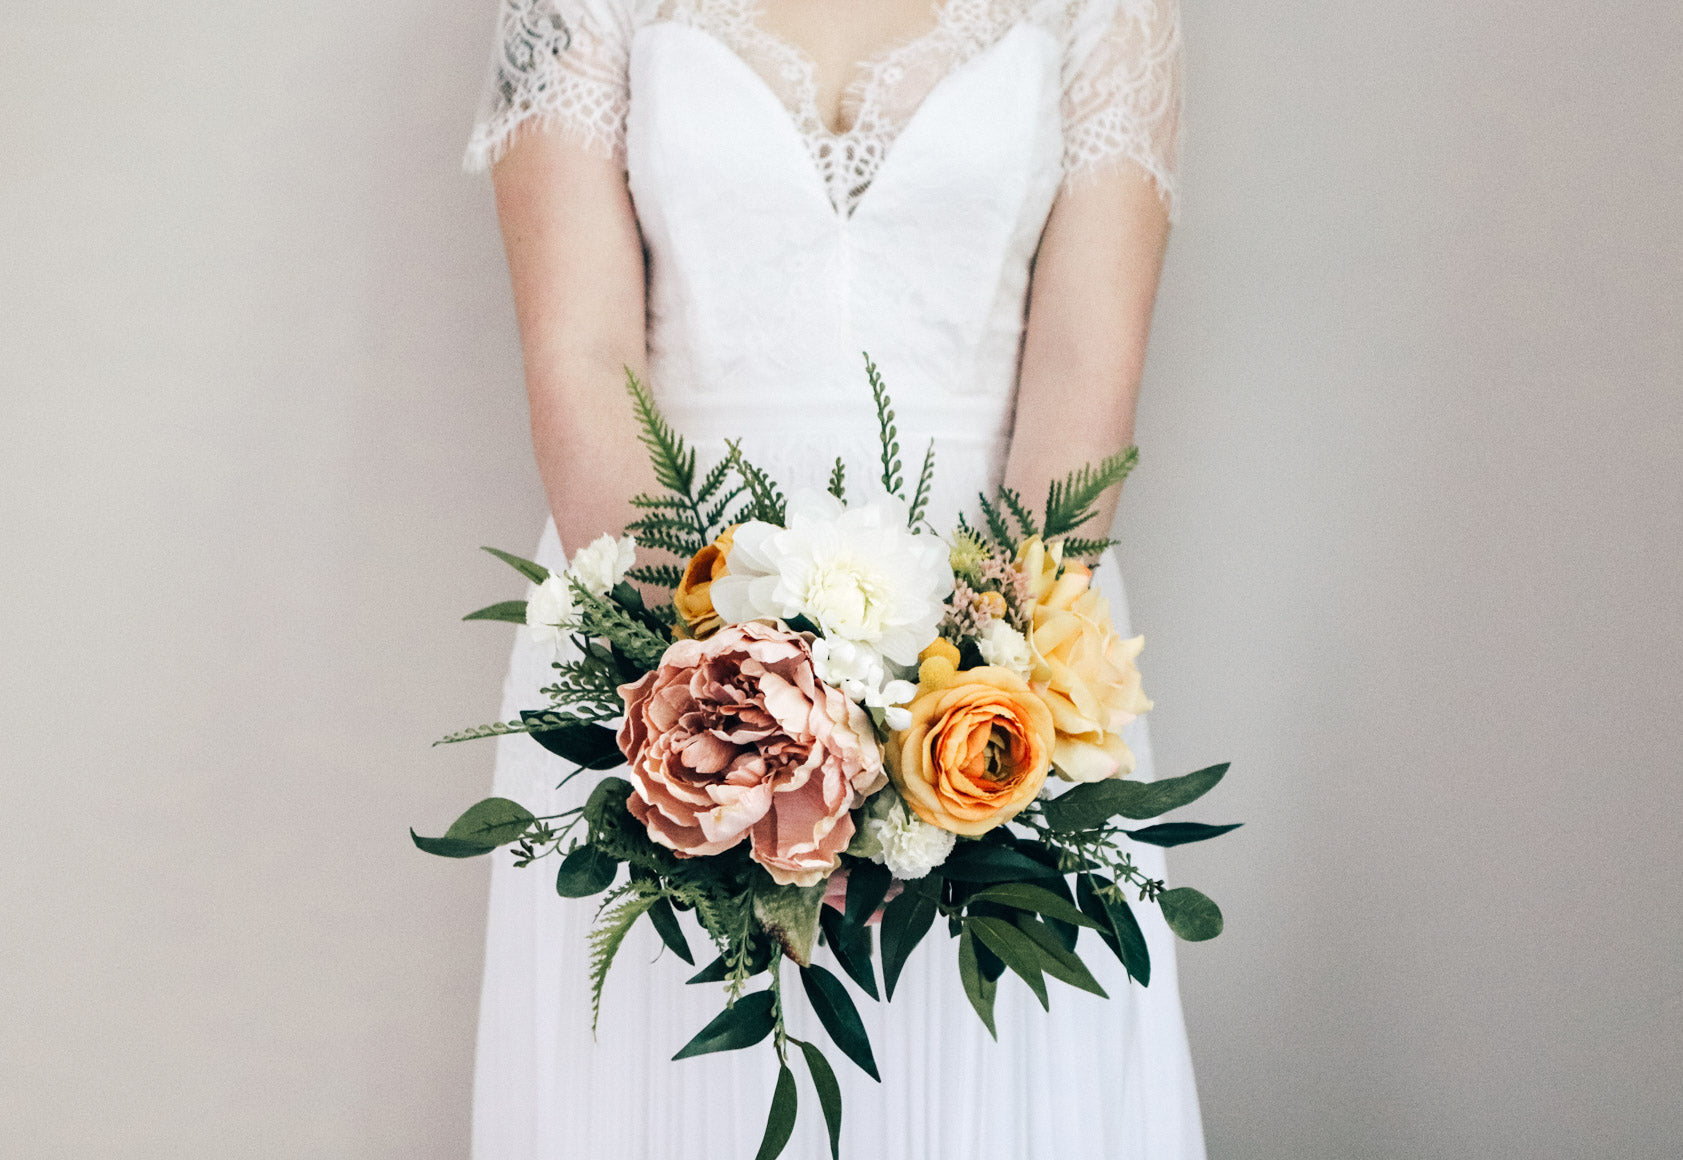 Chloe Medium Bridal Bouquet